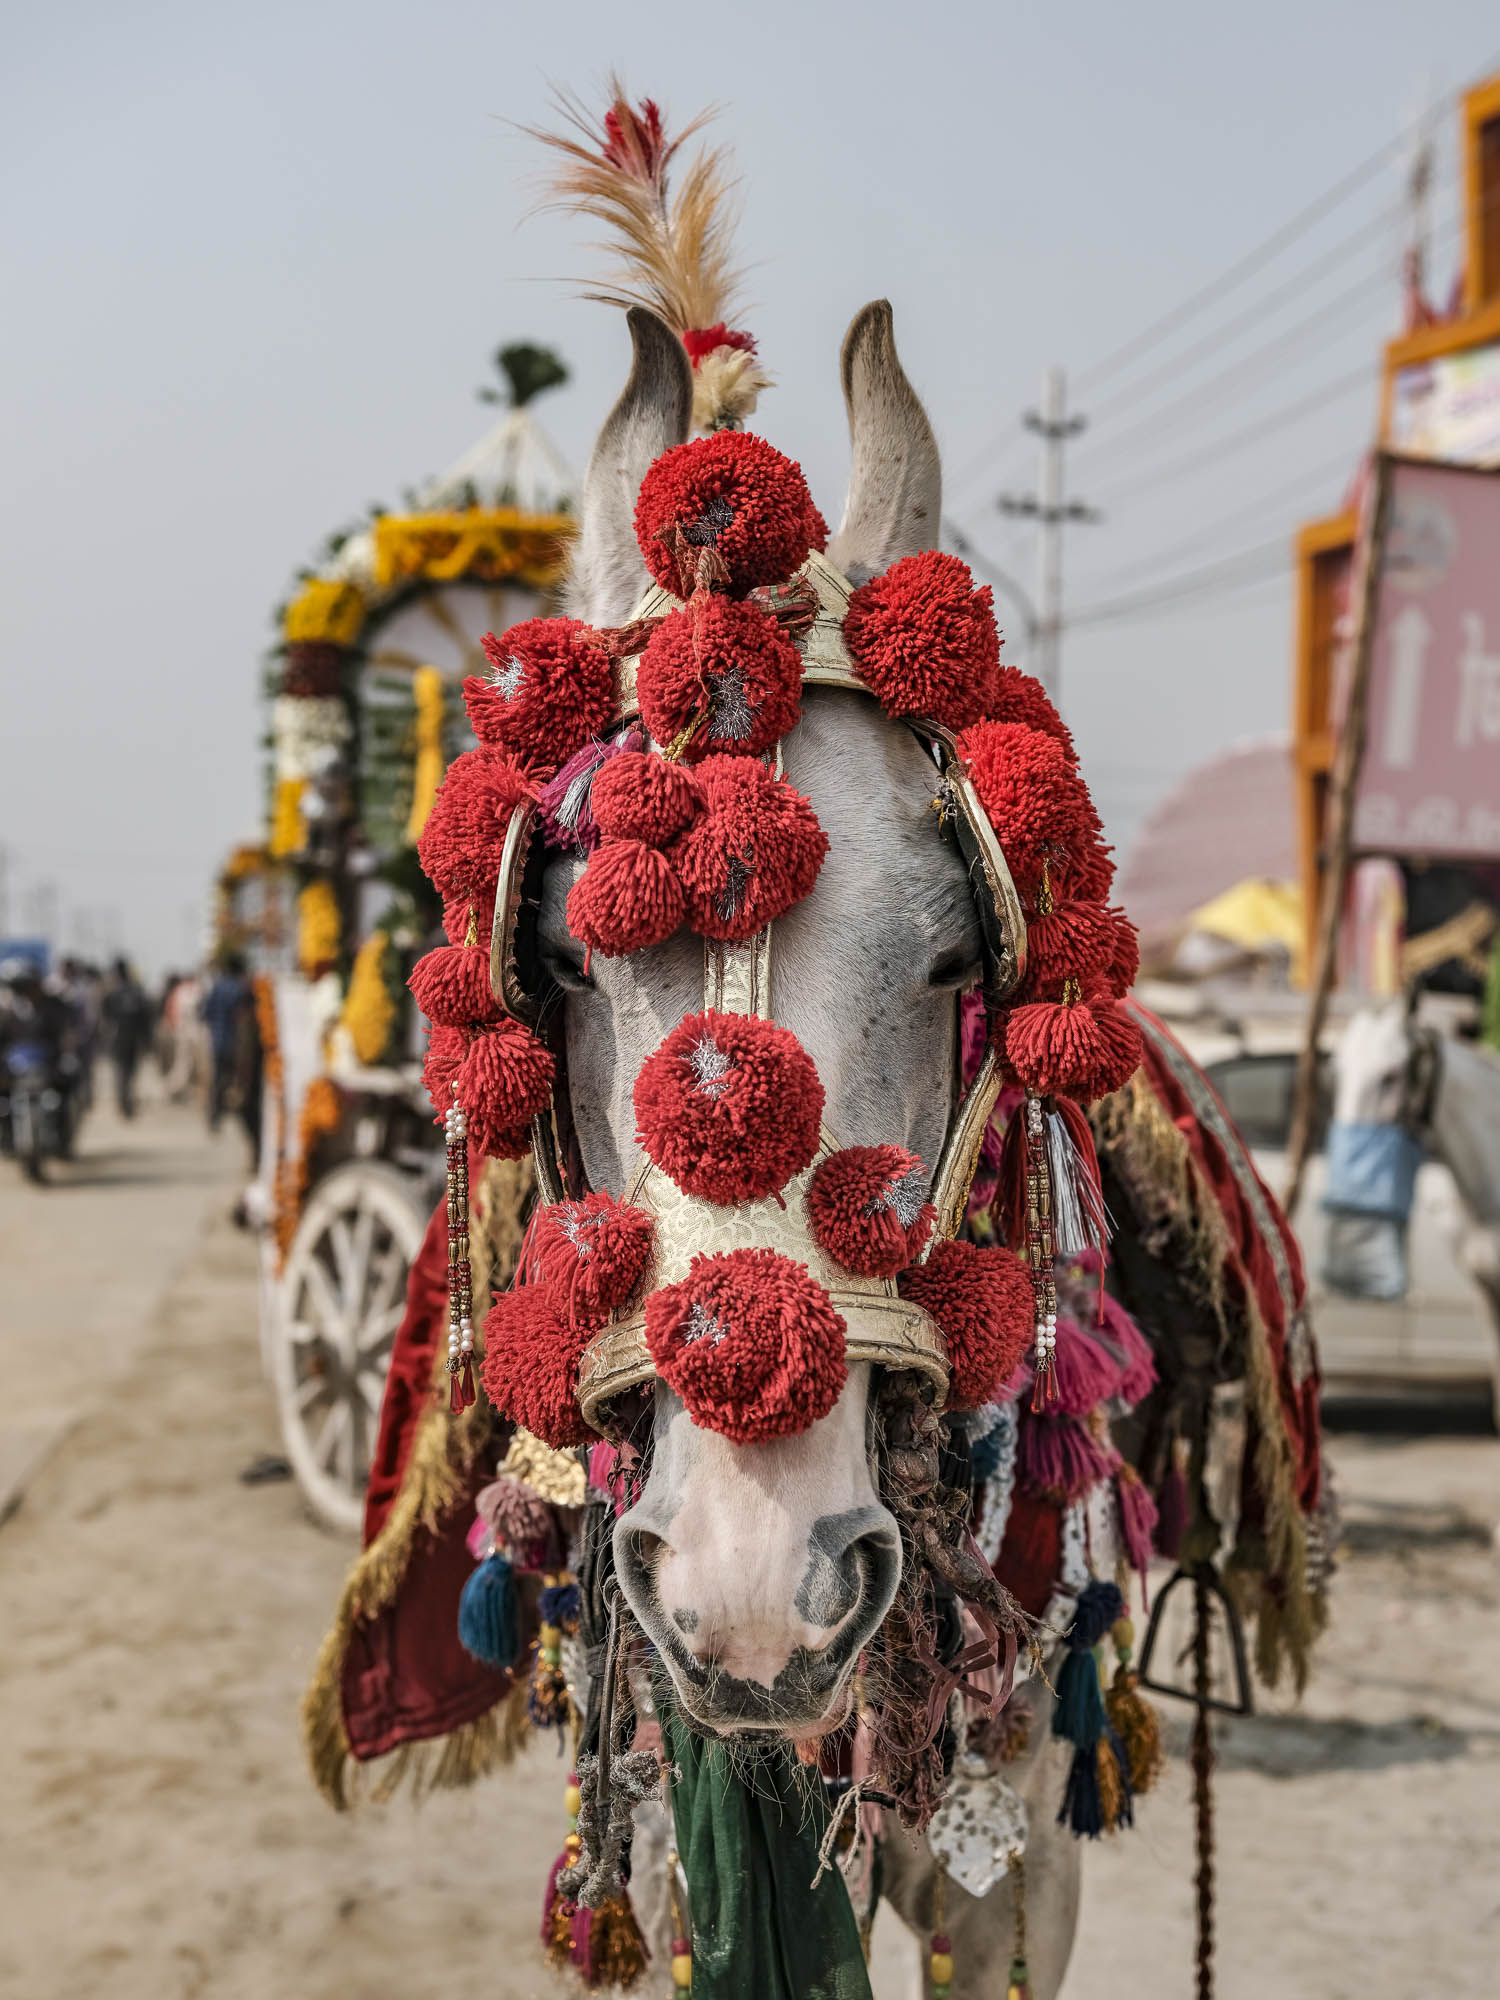 horse red pilgrims Kumbh mela 2019 India Allahabad Prayagraj Ardh hindu religious Festival event rivers photographer jose jeuland photography